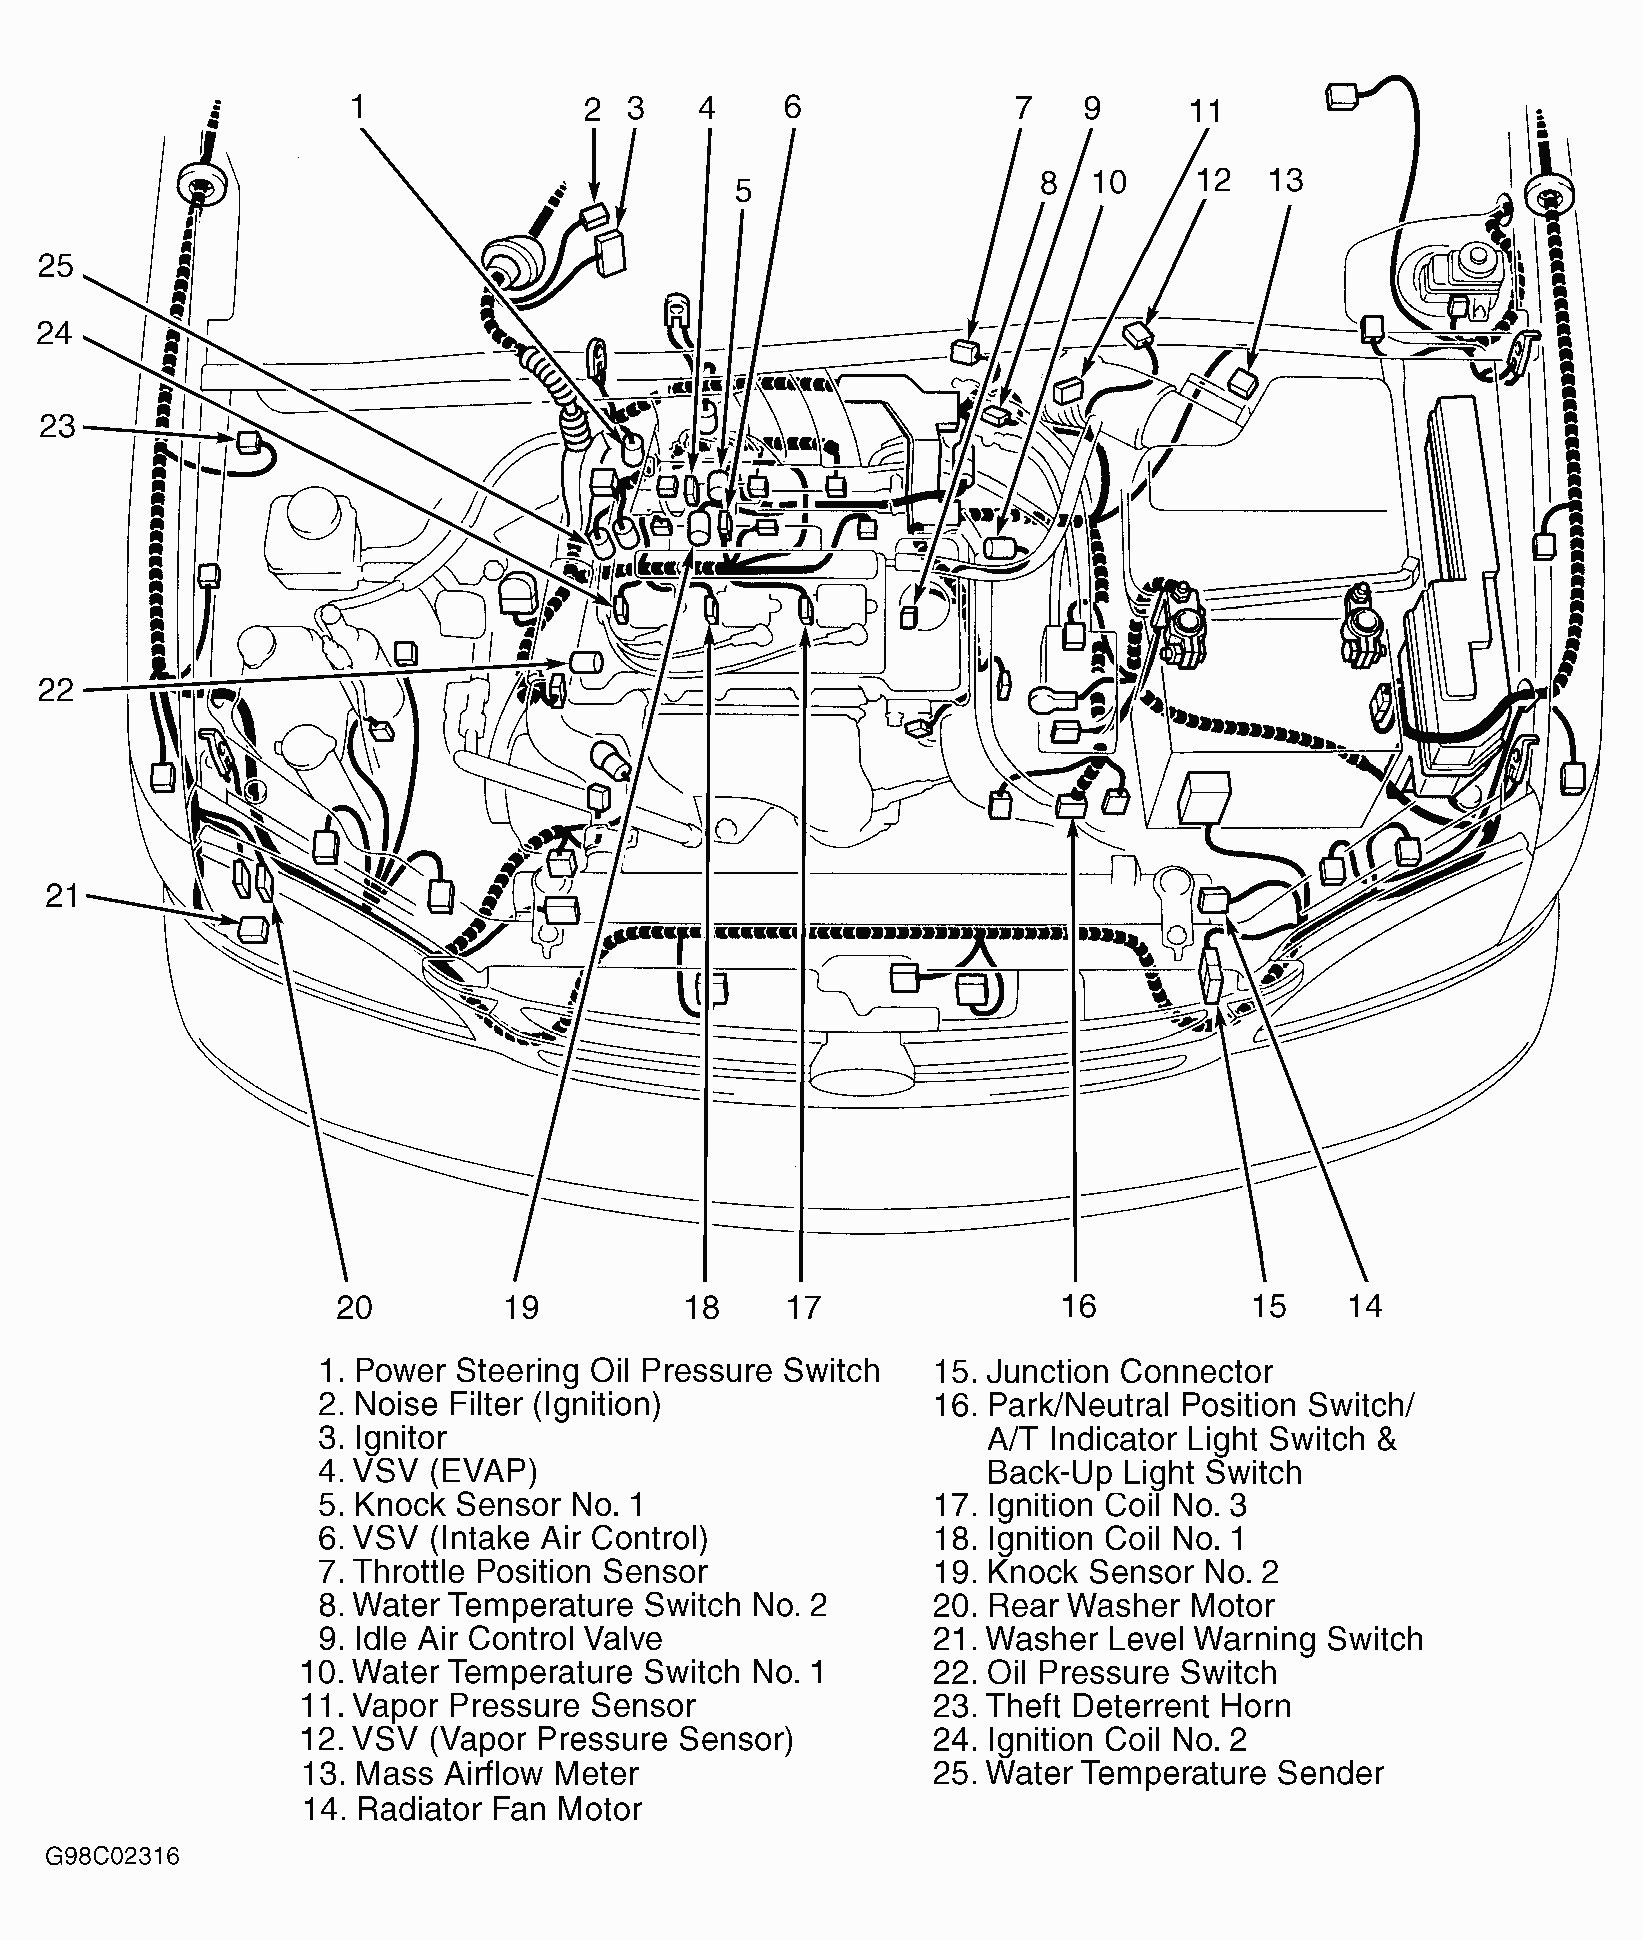 hight resolution of 2001 toyota avalon engine diagram auto electrical wiring 2007 toyota camry fuse box diagram 2002 toyota